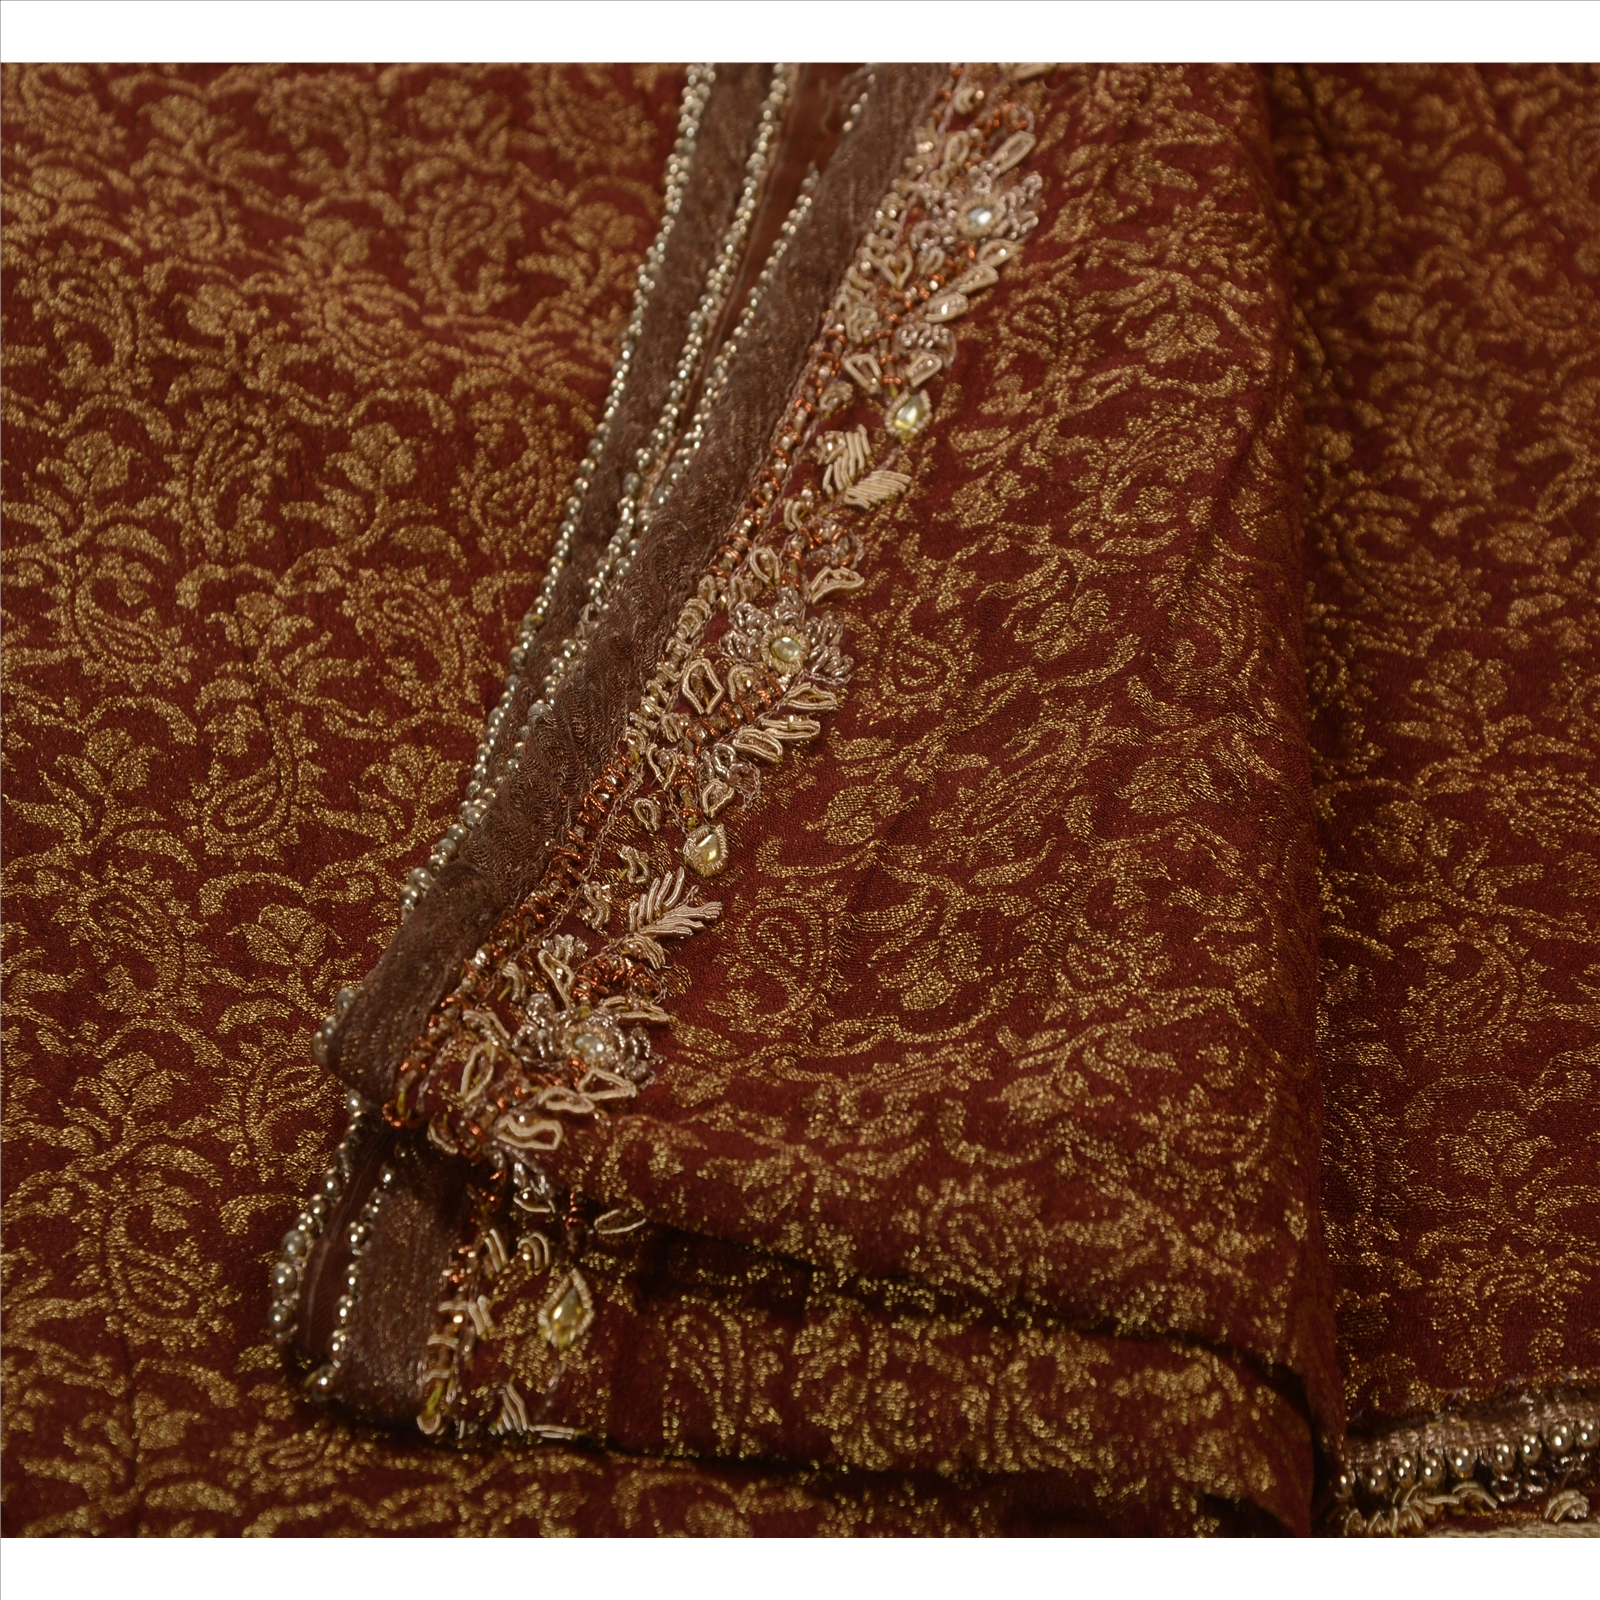 Antique vintage indian saree tissue hand embroidery woven